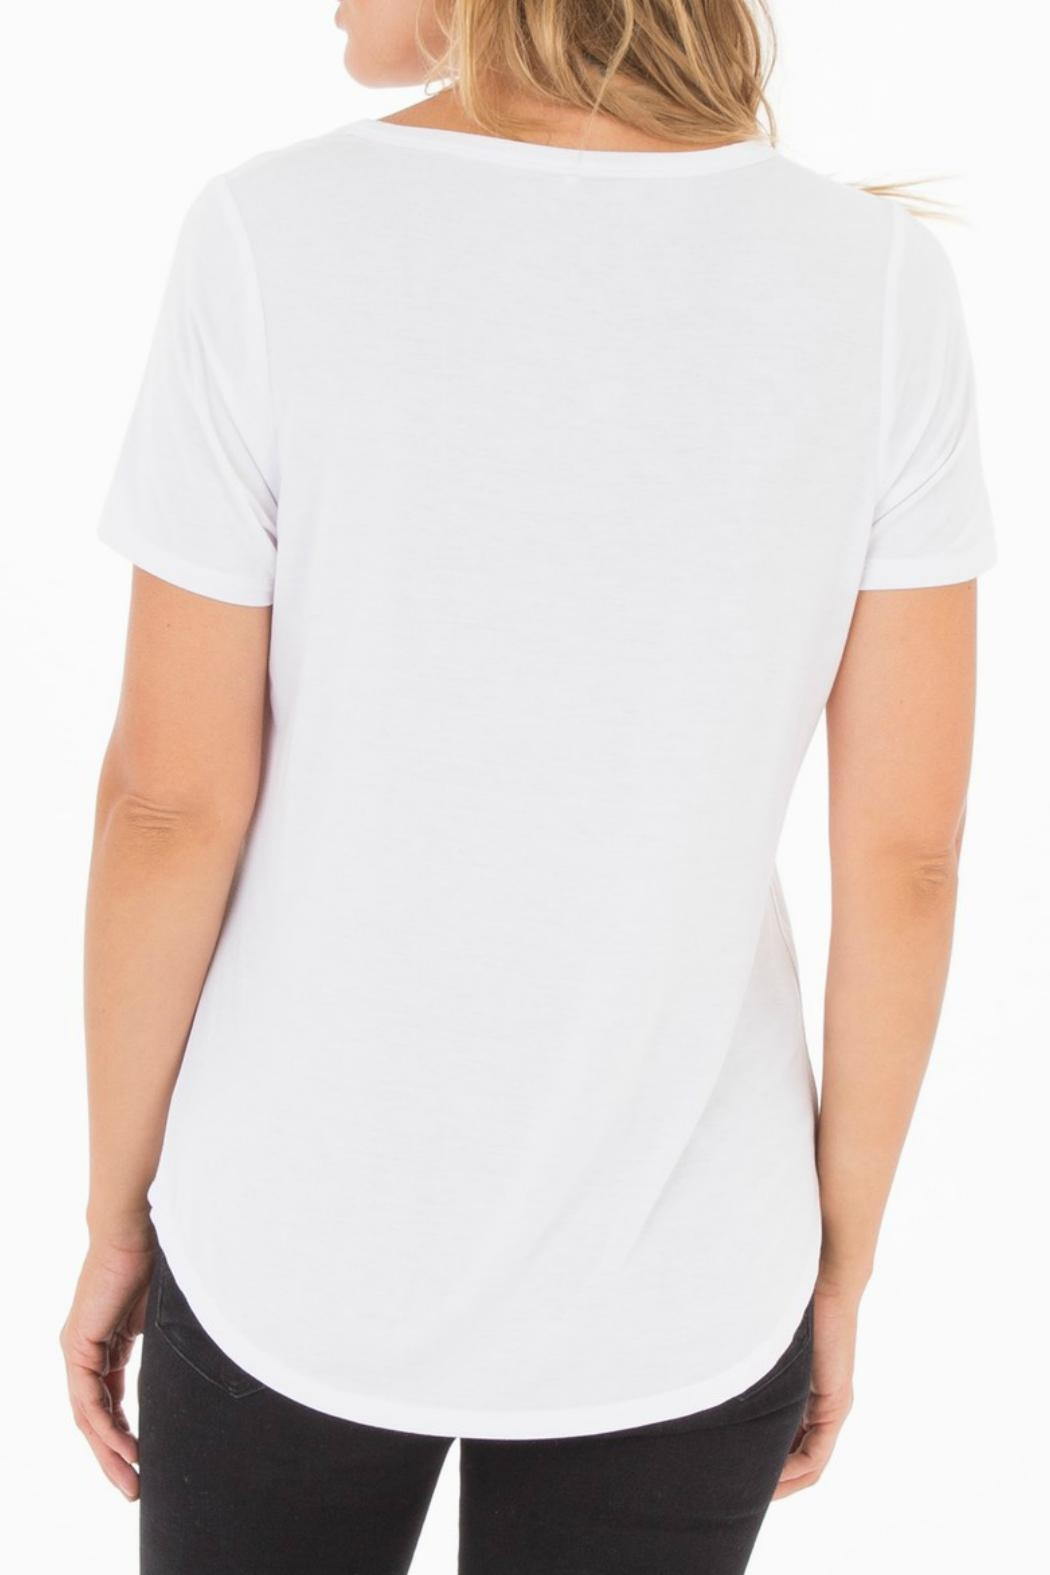 z supply Split Neck Tee - Side Cropped Image